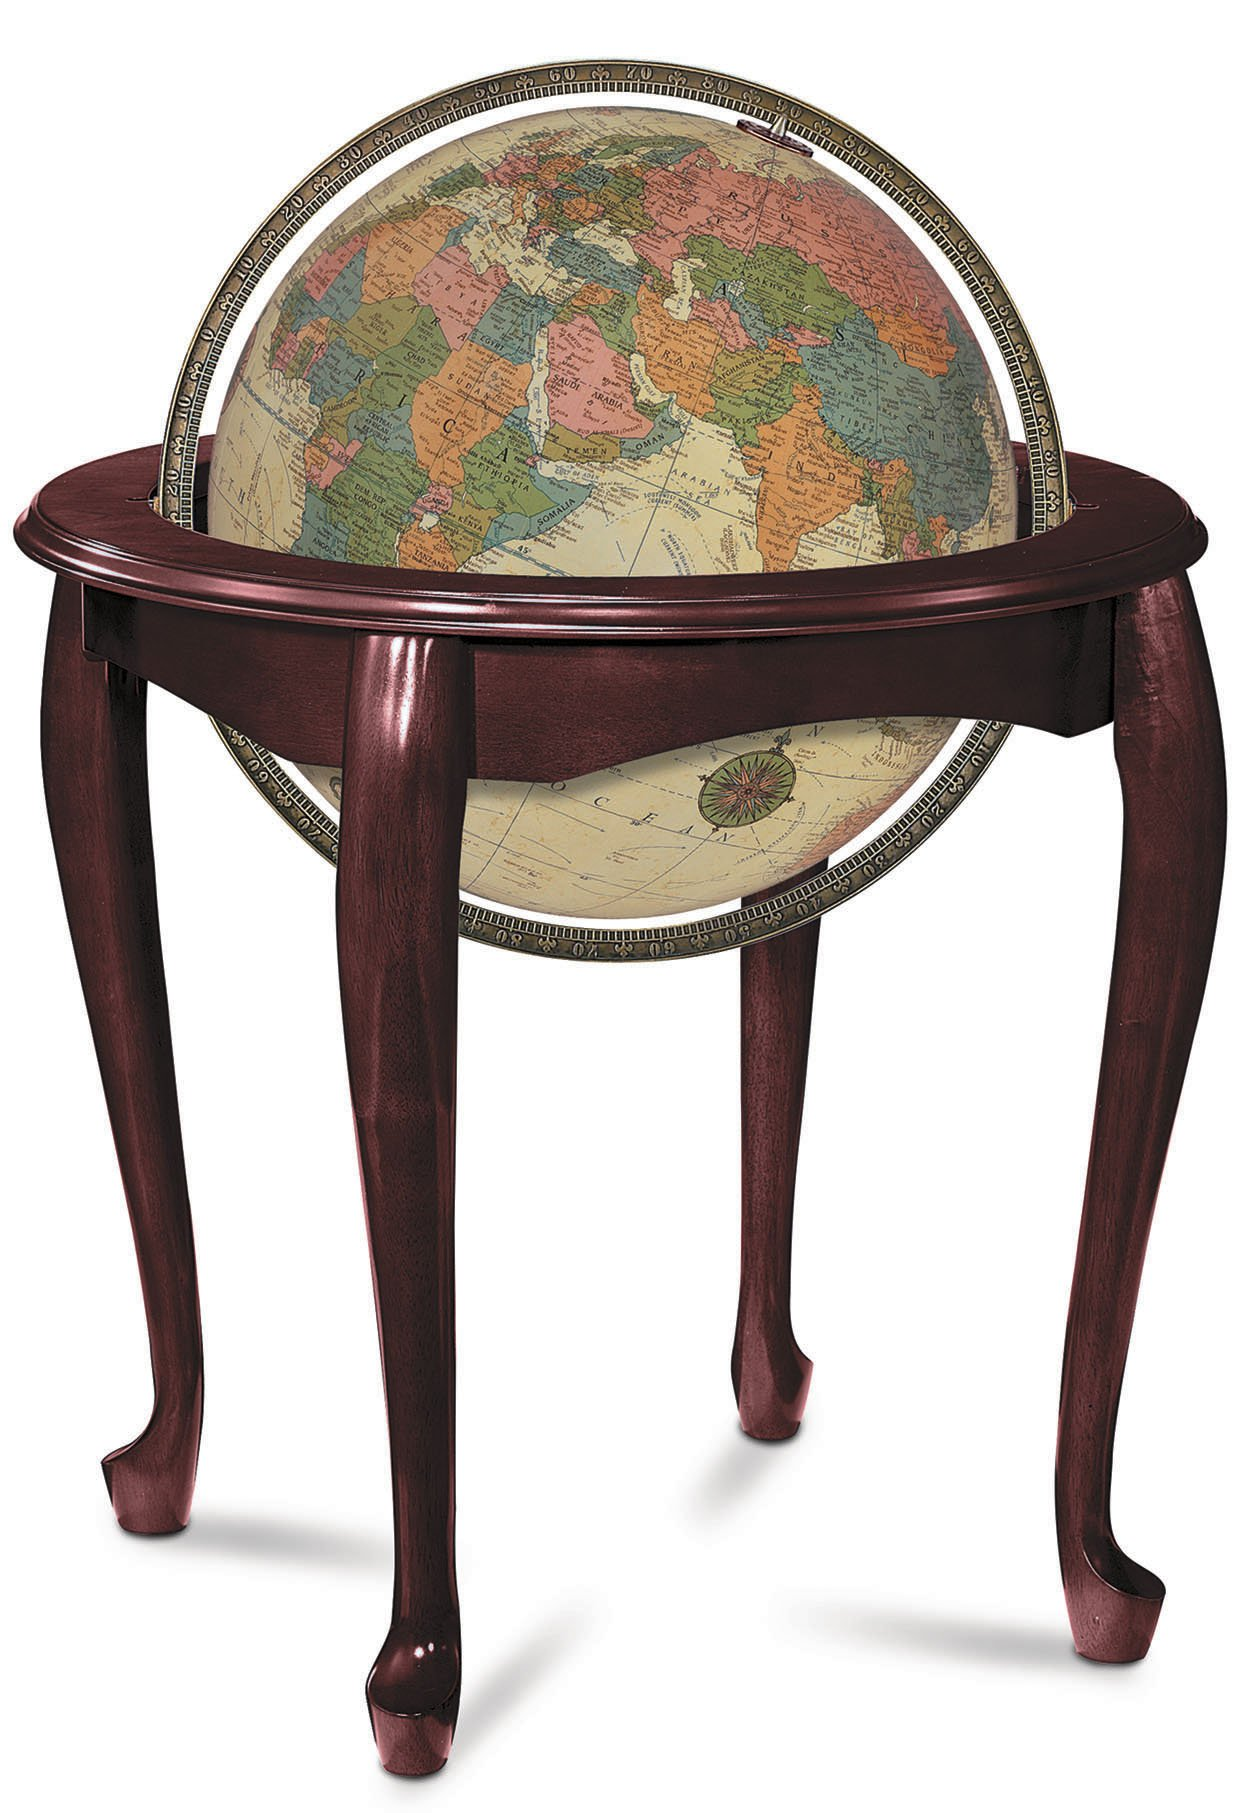 Replogle Globes Illuminated Queen Anne Globe, Antique Ocean, 16-Inch Diameter by Replogle